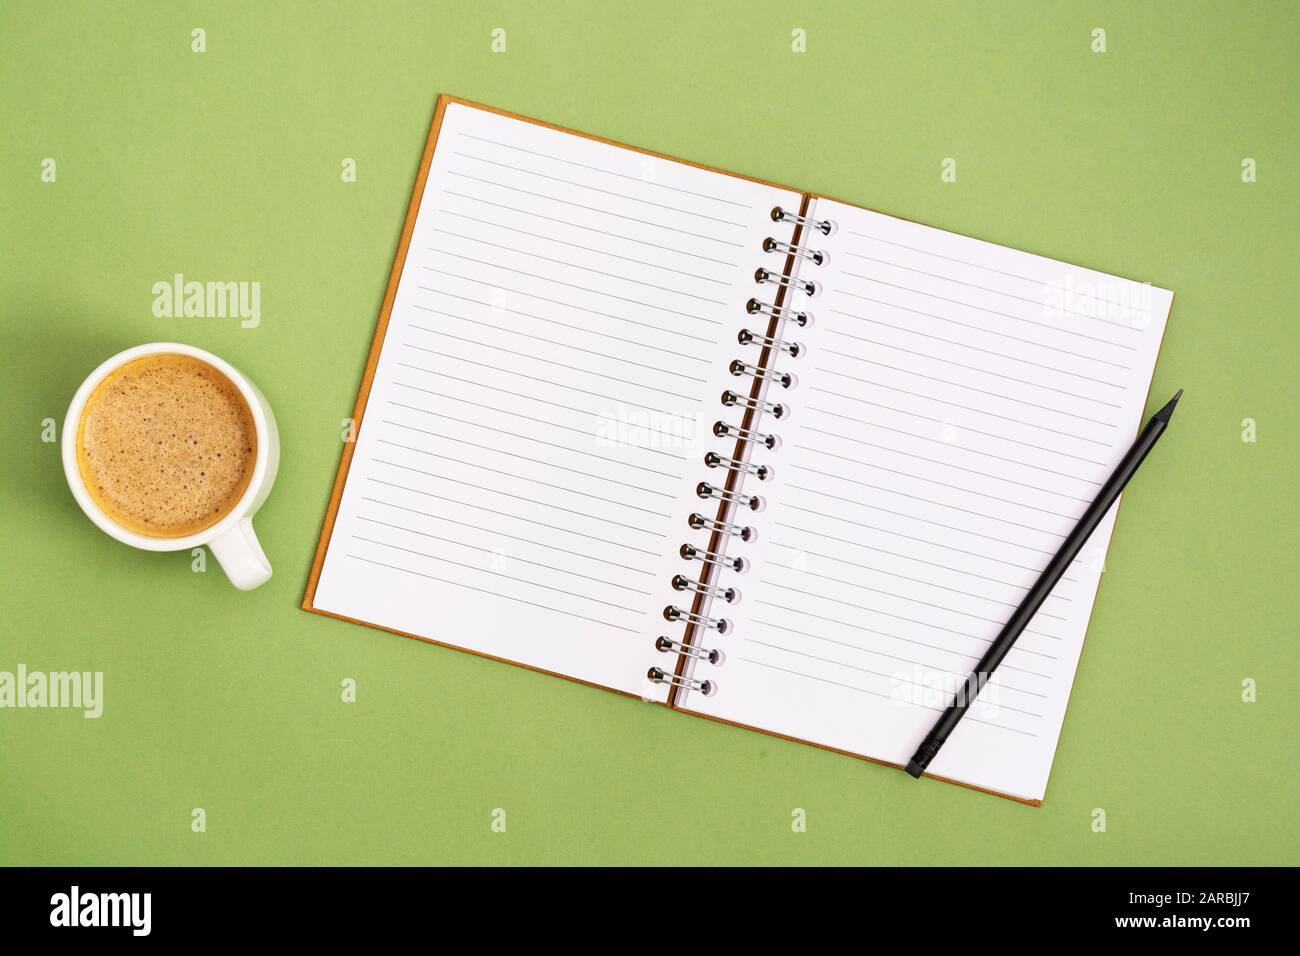 Open notebook with empty page and coffee cup. Table top, work space on green background. Creative flat lay. Stock Photo